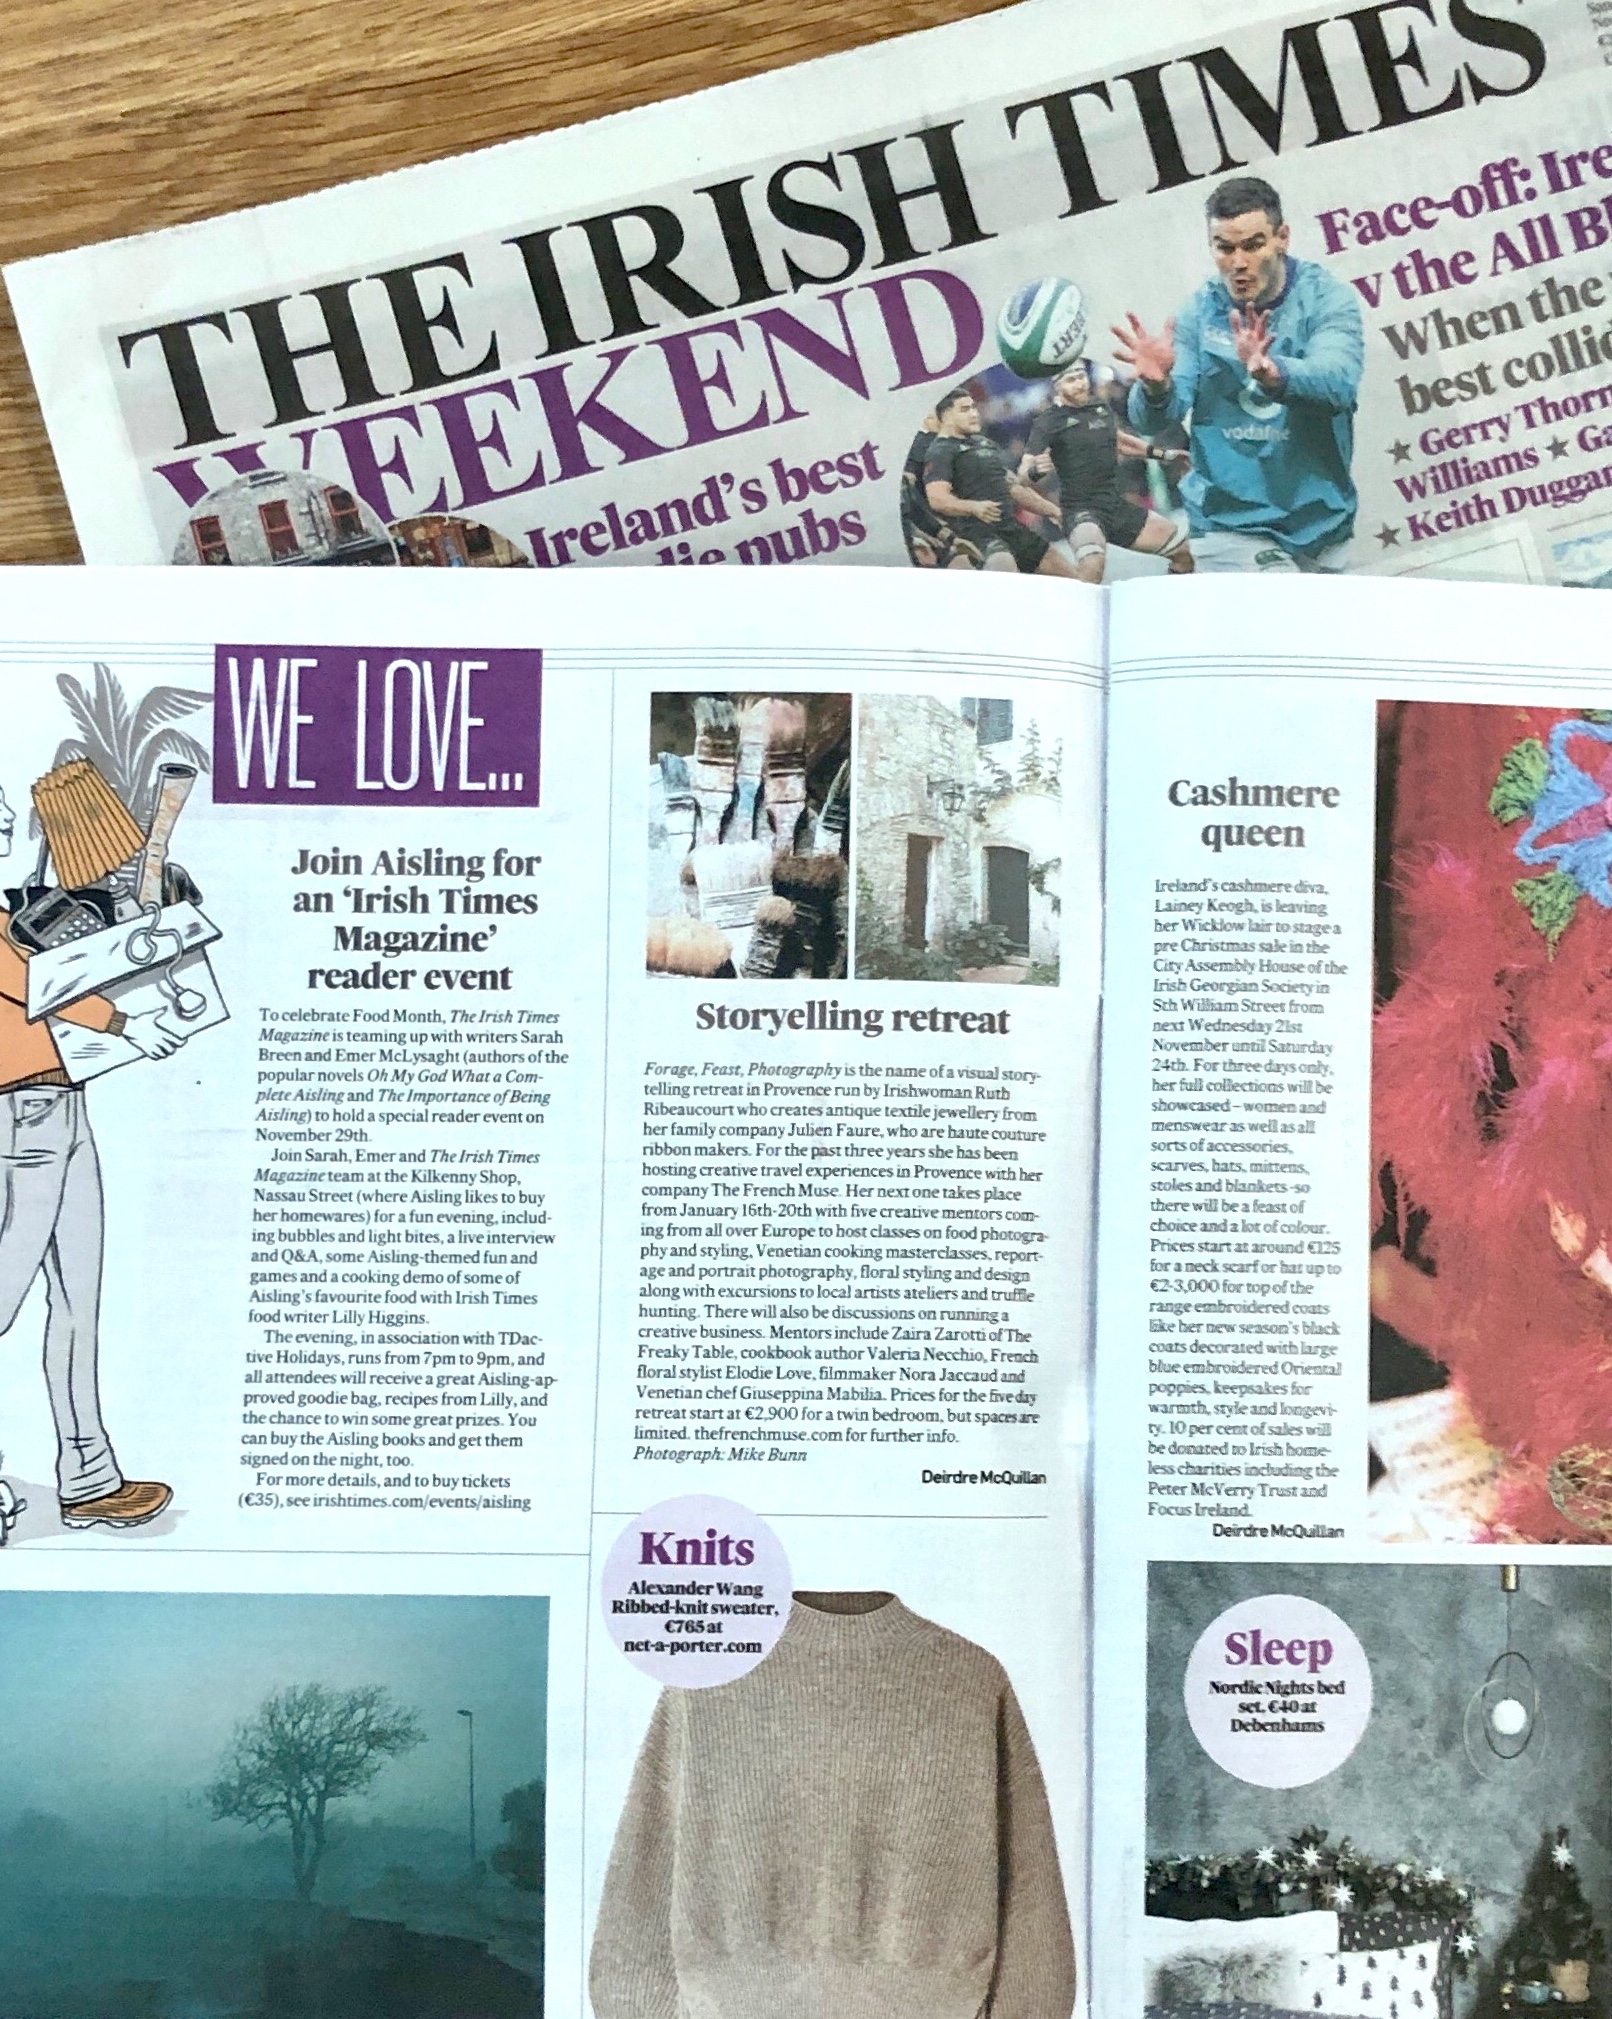 Irish Times Saturday Magazine, The French Muse